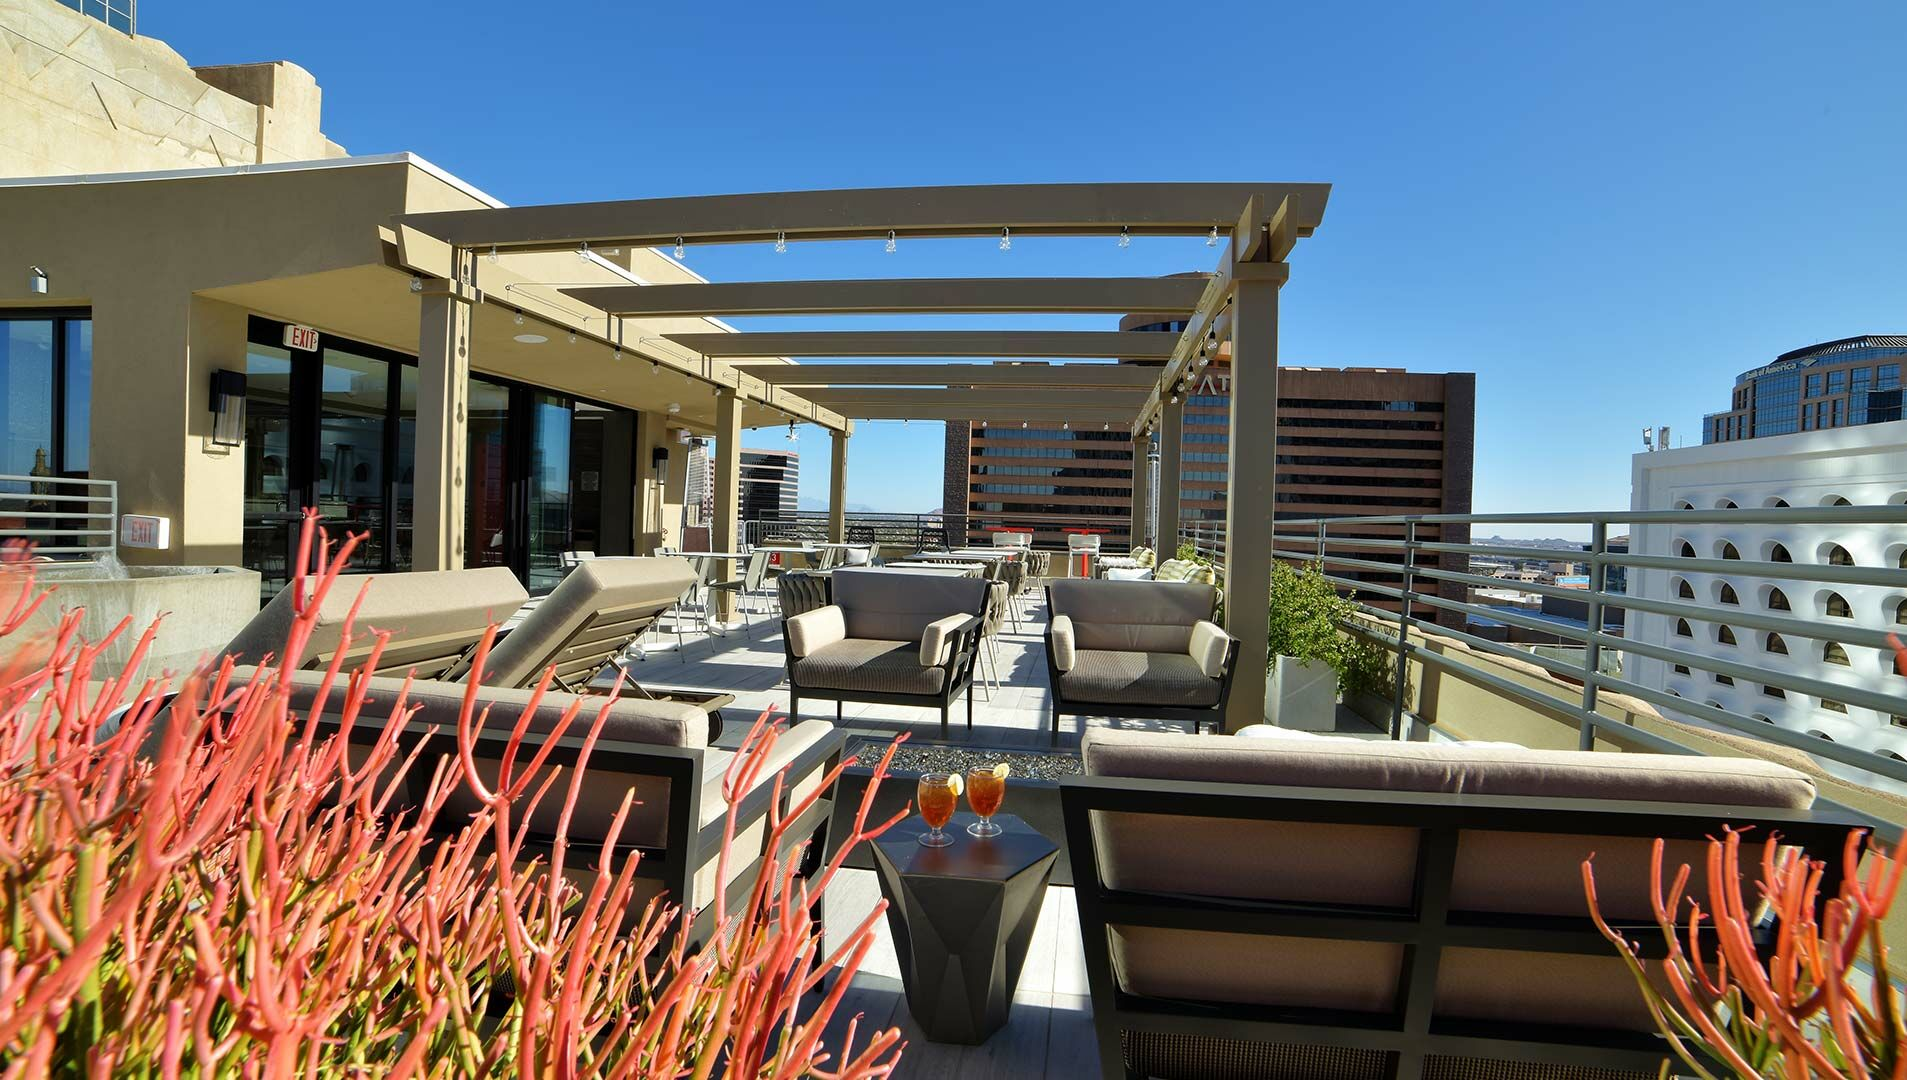 Floor 13 Rooftop Bar - Bar - Phoenix, AZ